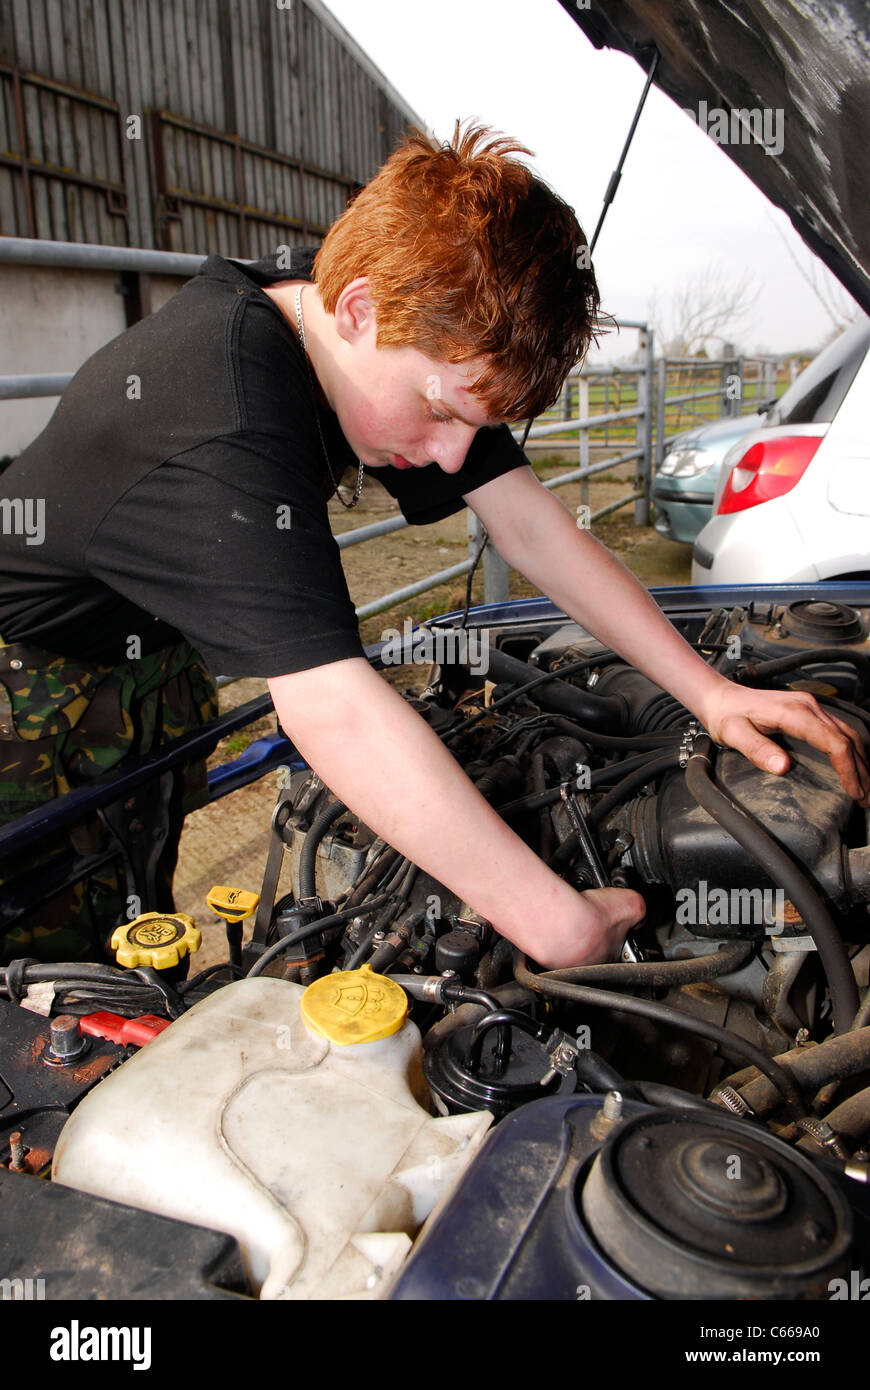 Youth learning car mechanic skills at an initiative to foster teamwork and confidence skills amongst disadvantaged - Stock Image